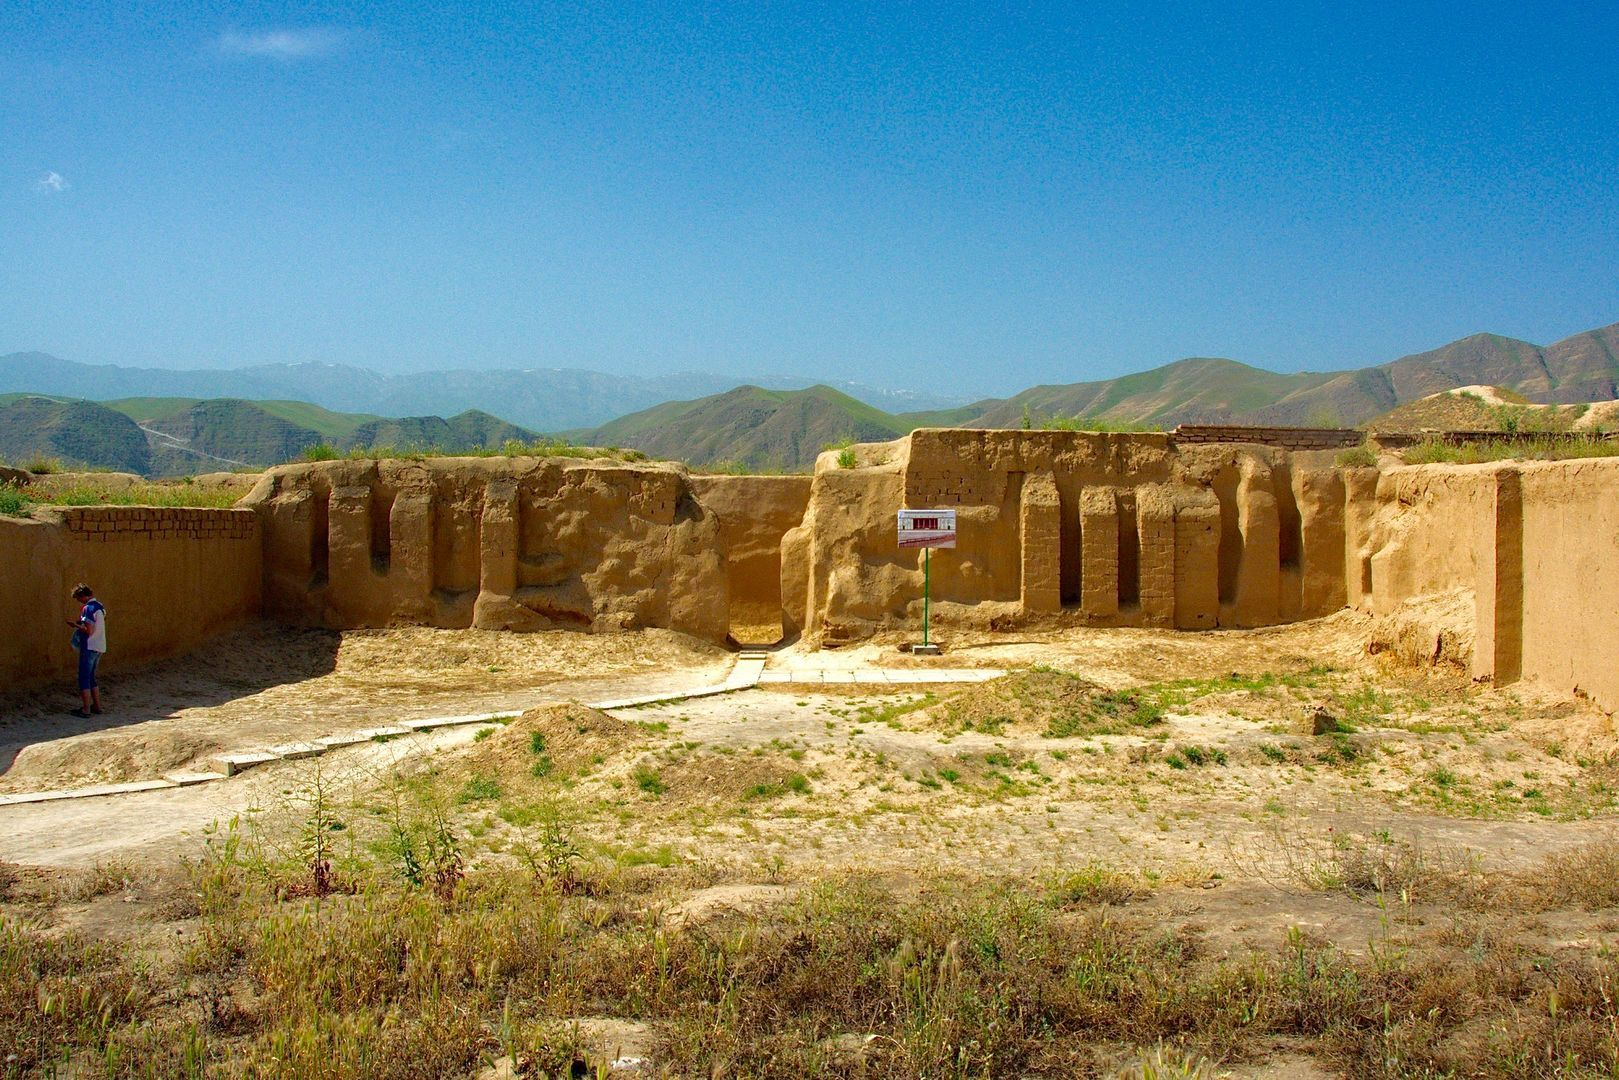 Turkmenistan UNESCO site, Nisa, Central Asia